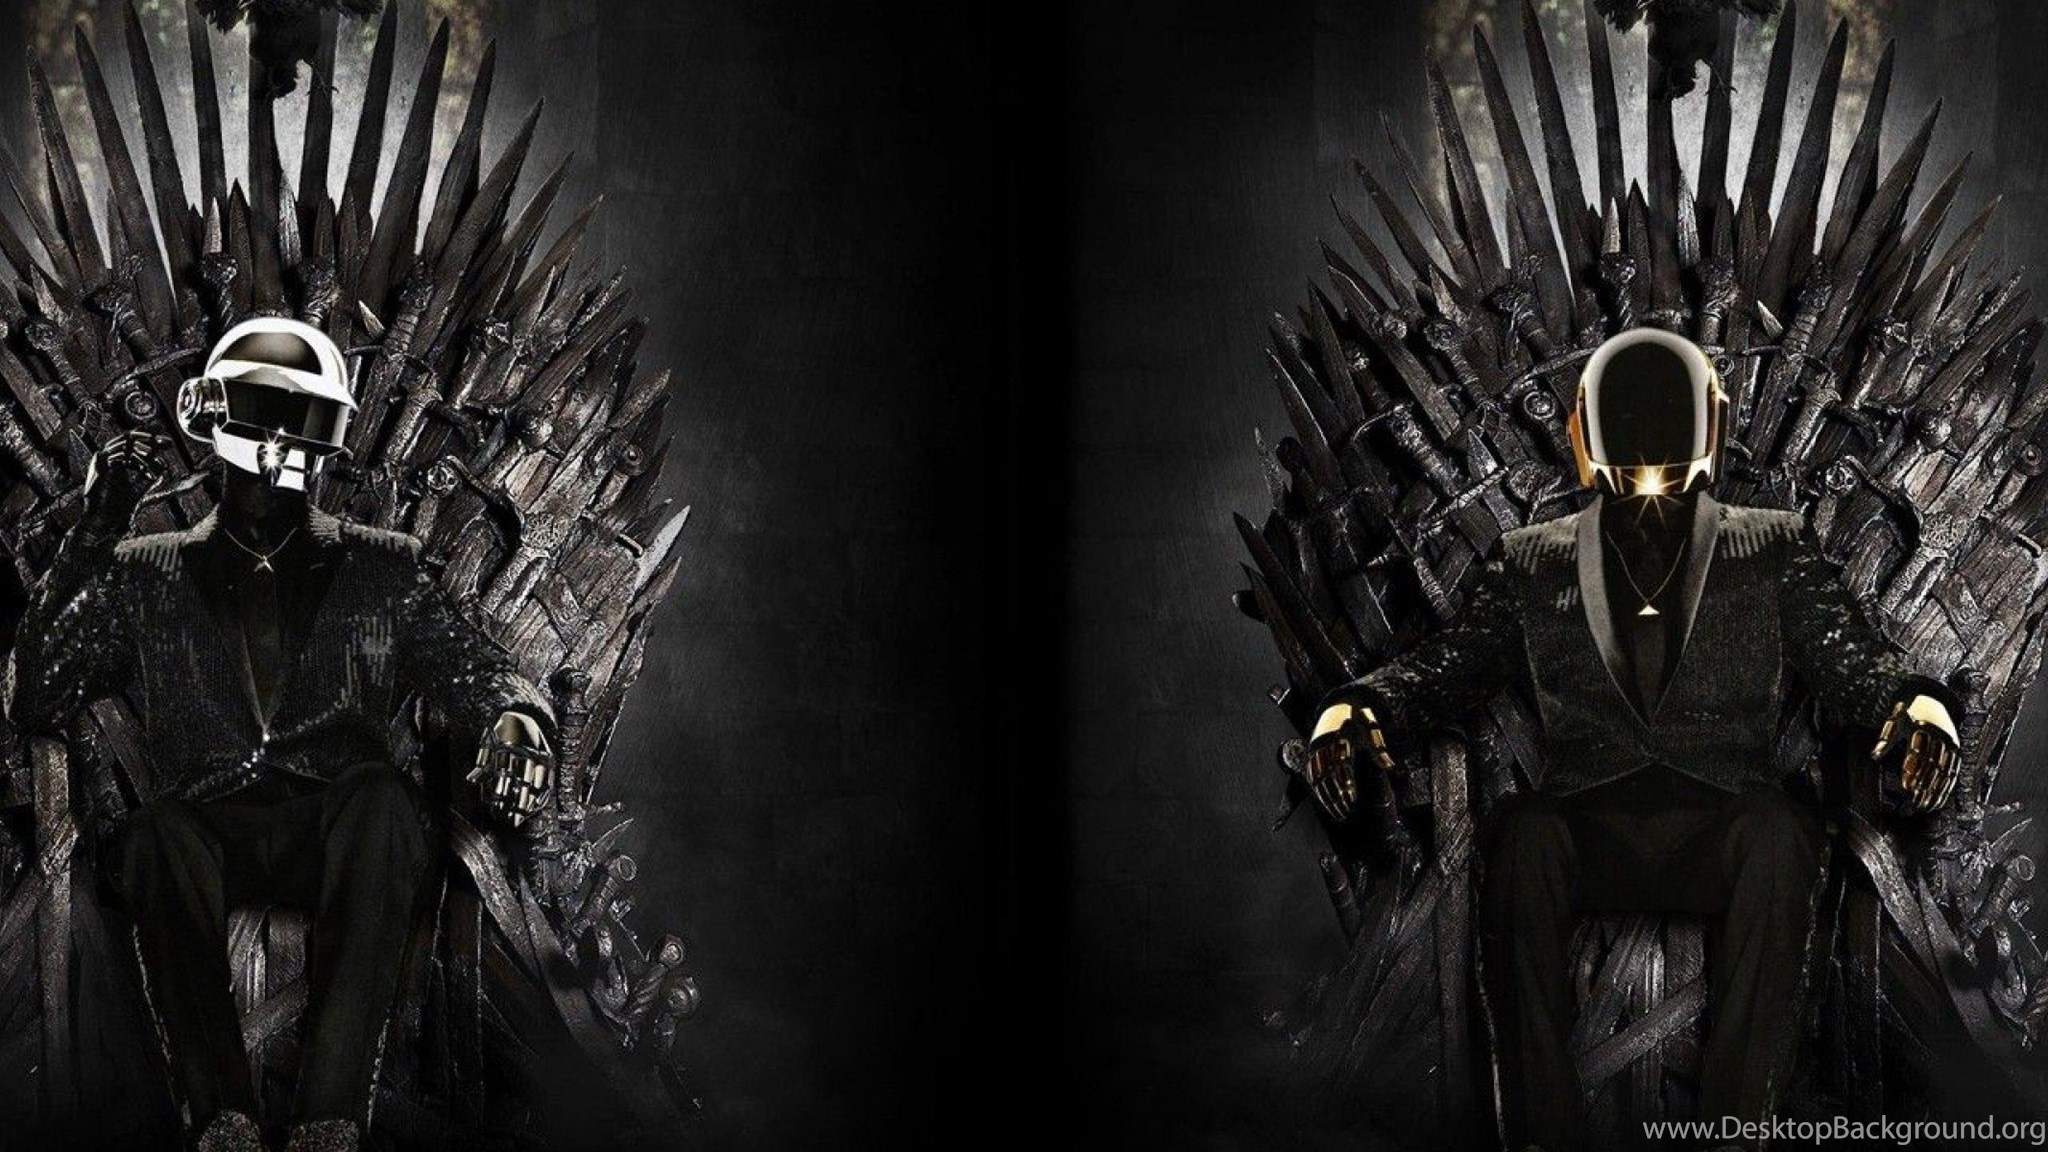 Best 10 Game Of Thrones 3 Monitor Wallpaper Pictures Image Gallery